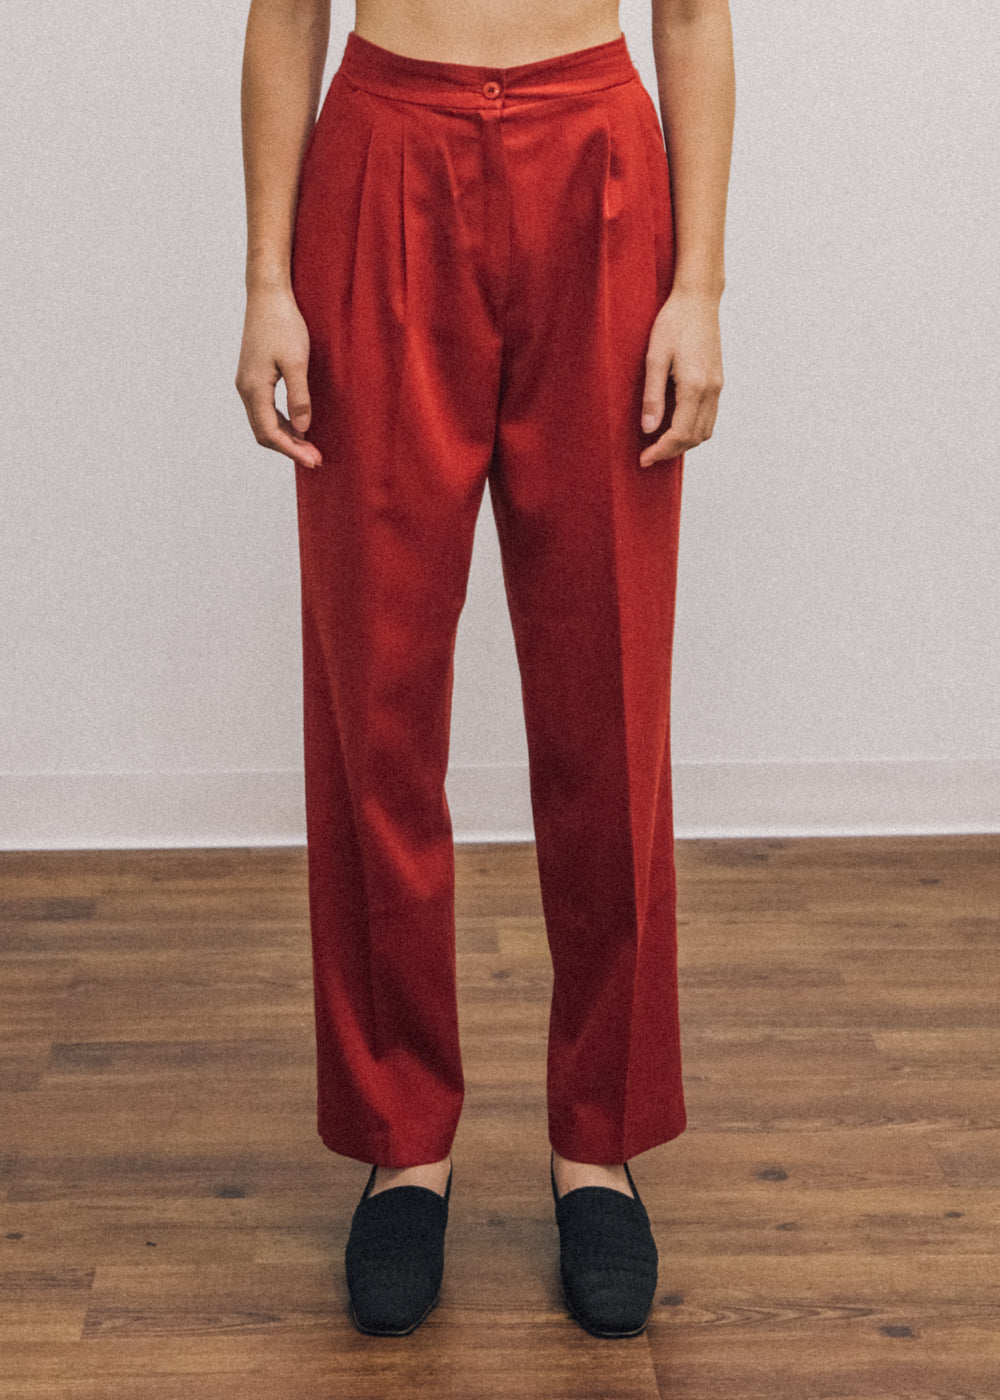 Pre by New Classics Vintage Red High Waist Trousers — Shop sustainable fashion and slow fashion at New Classics Studios